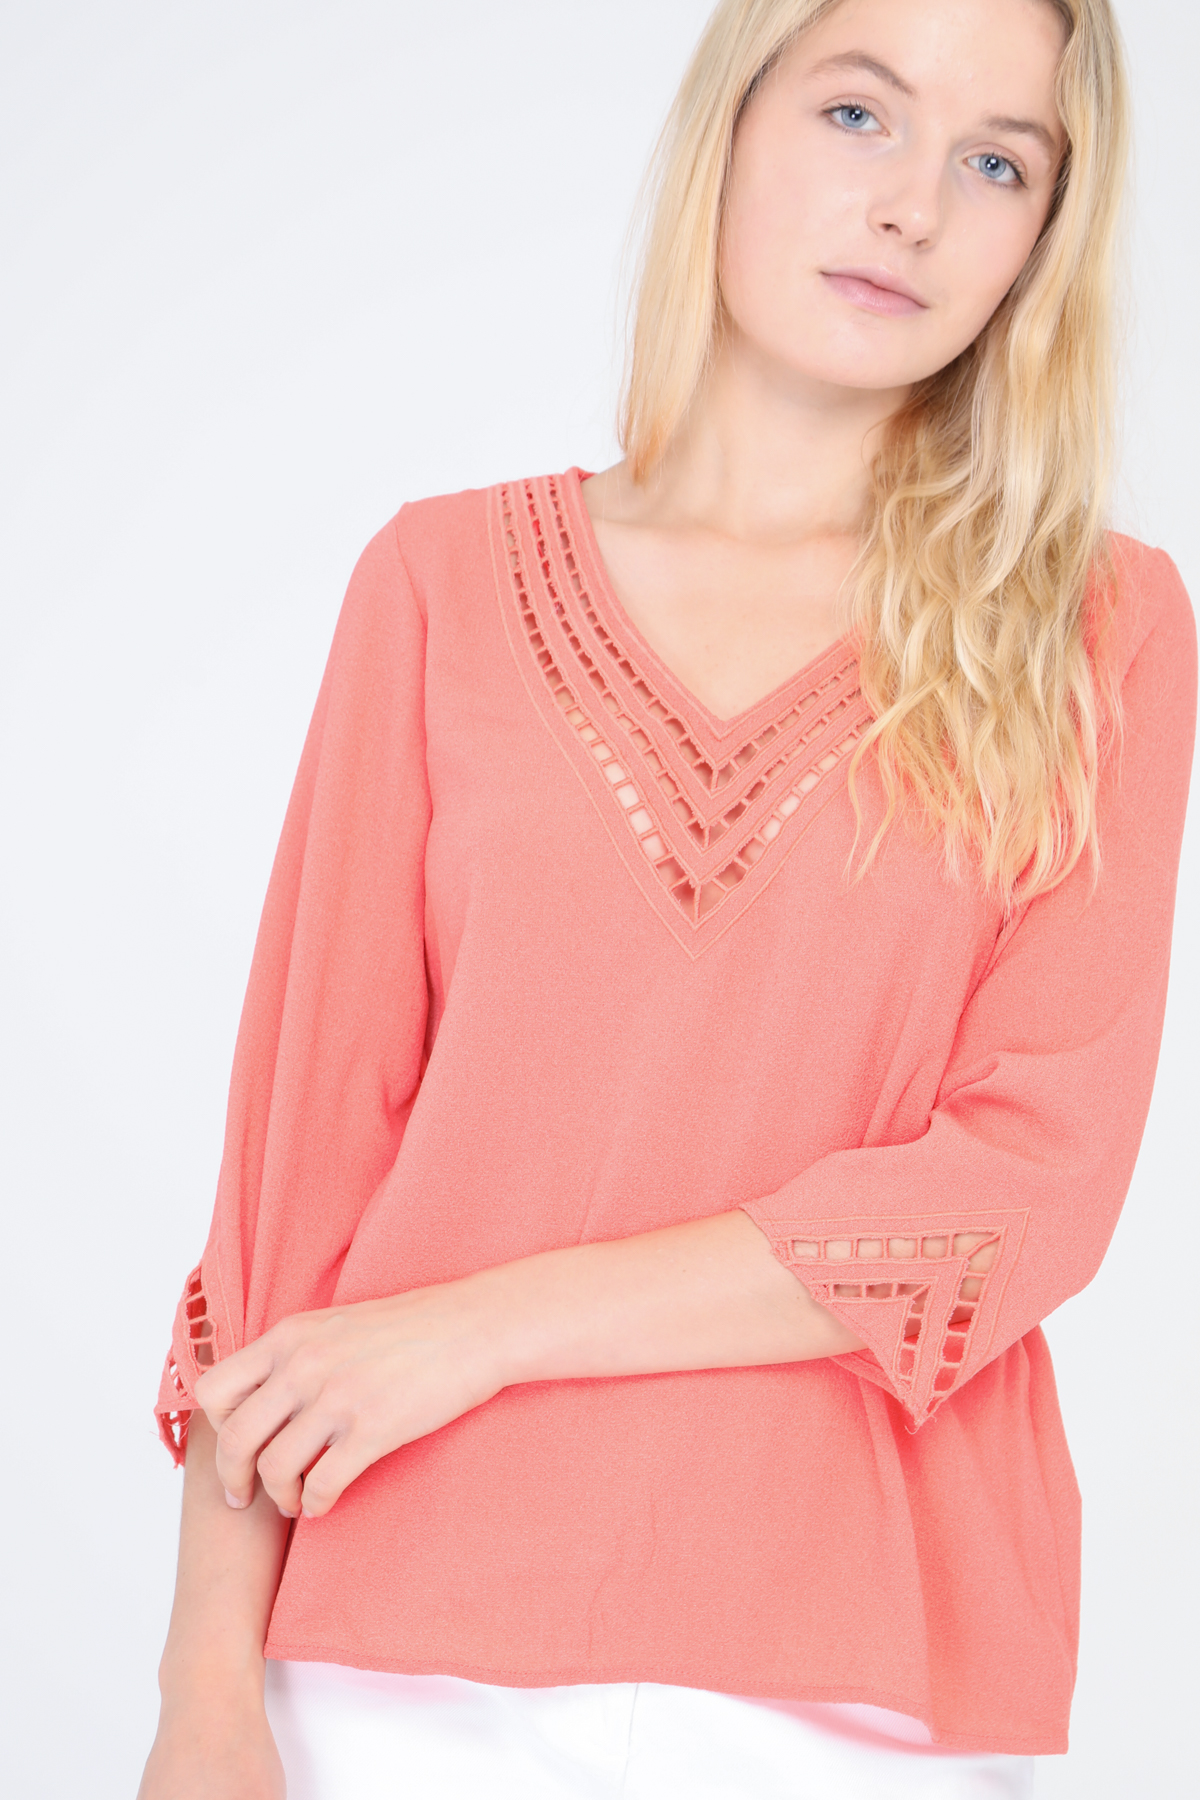 Blouses Femme Corail SWEEWE 31595 #c eFashion Paris